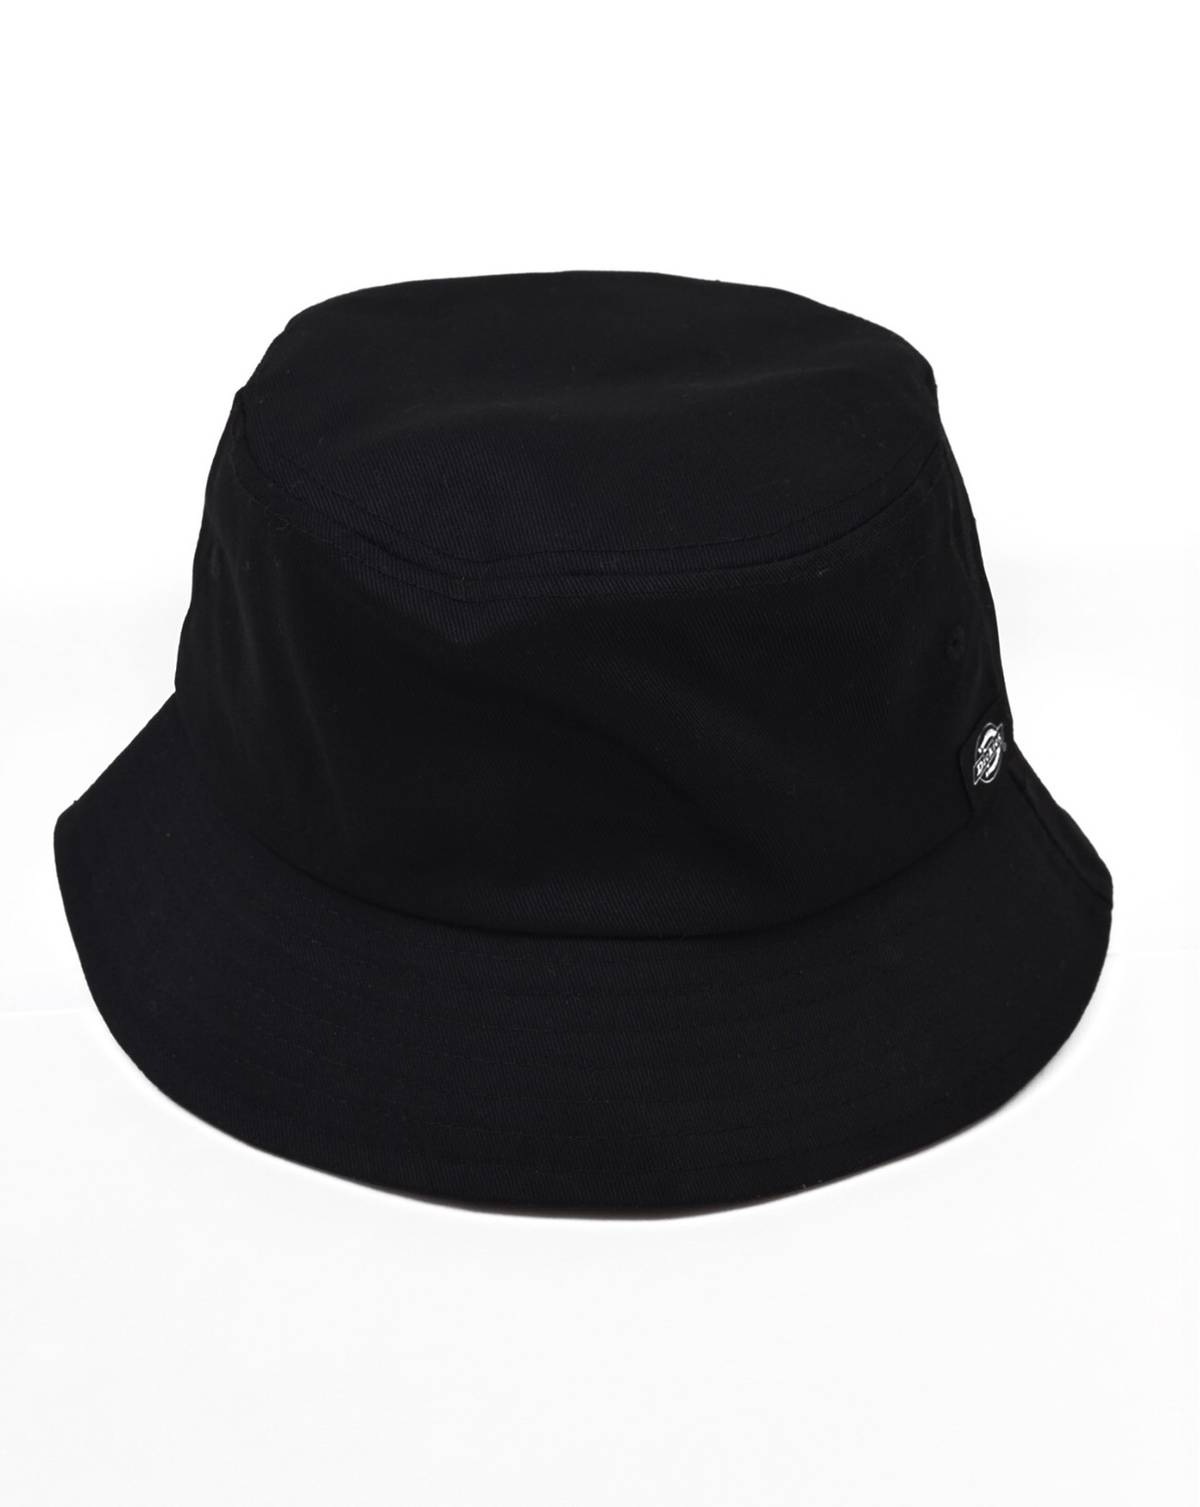 Dickies DICKIES ADDISON BUCKET HAT Size one size - Hats for Sale - Grailed 1ba7e1ad5aa